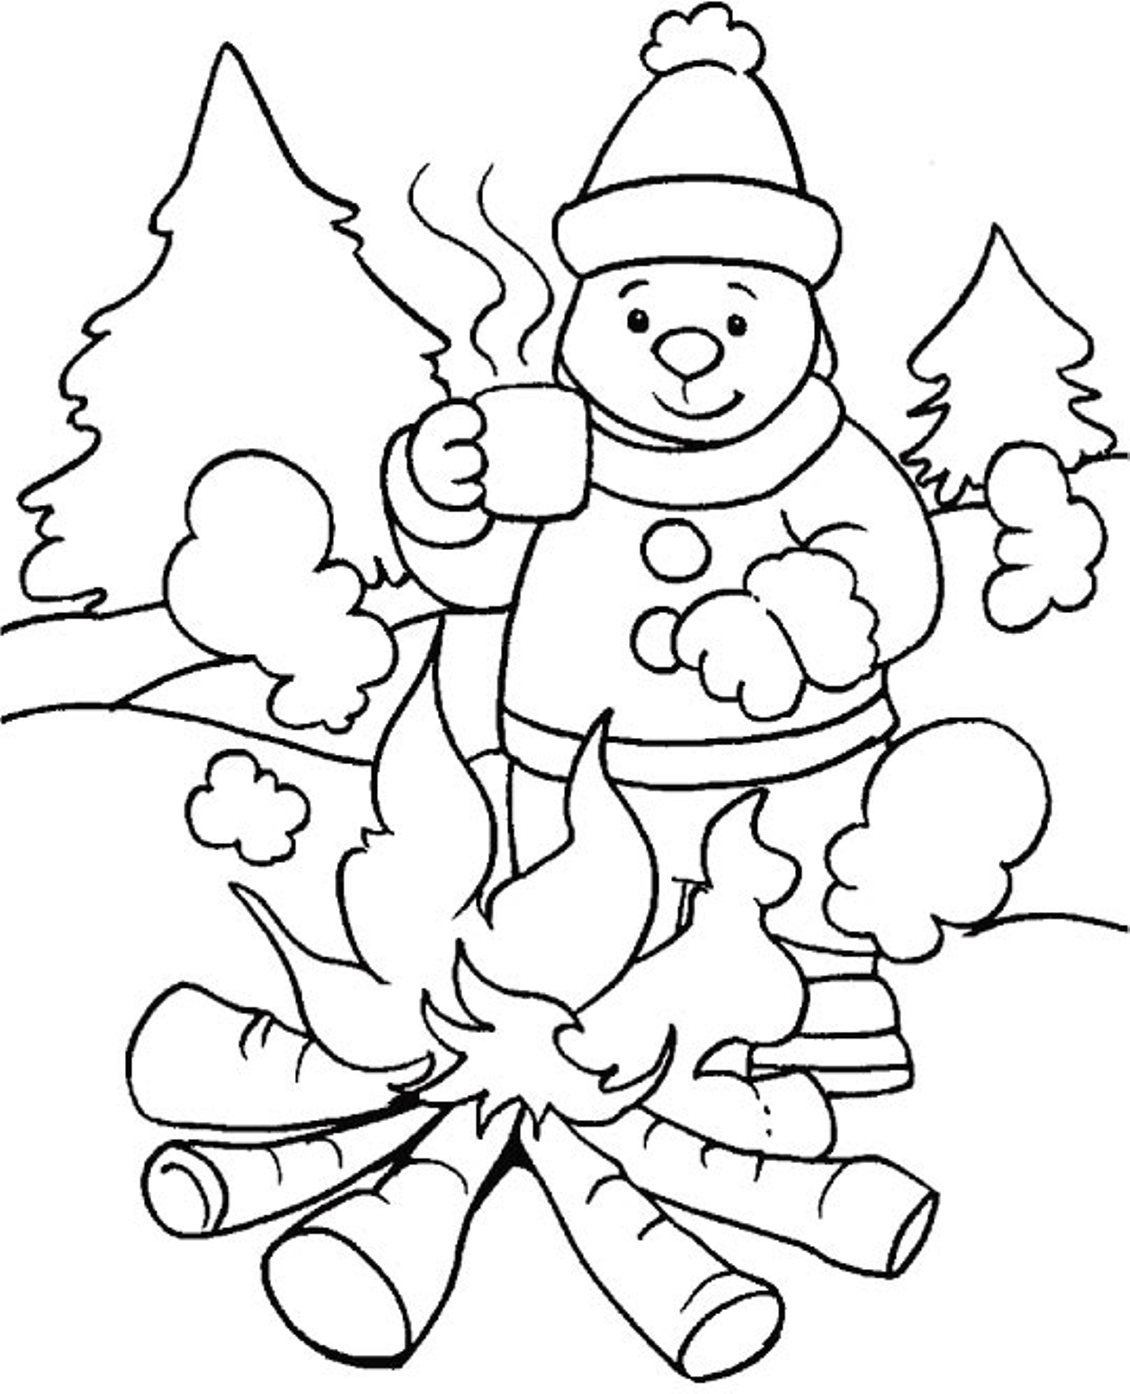 january coloring pages january coloring pages to download and print for free january pages coloring